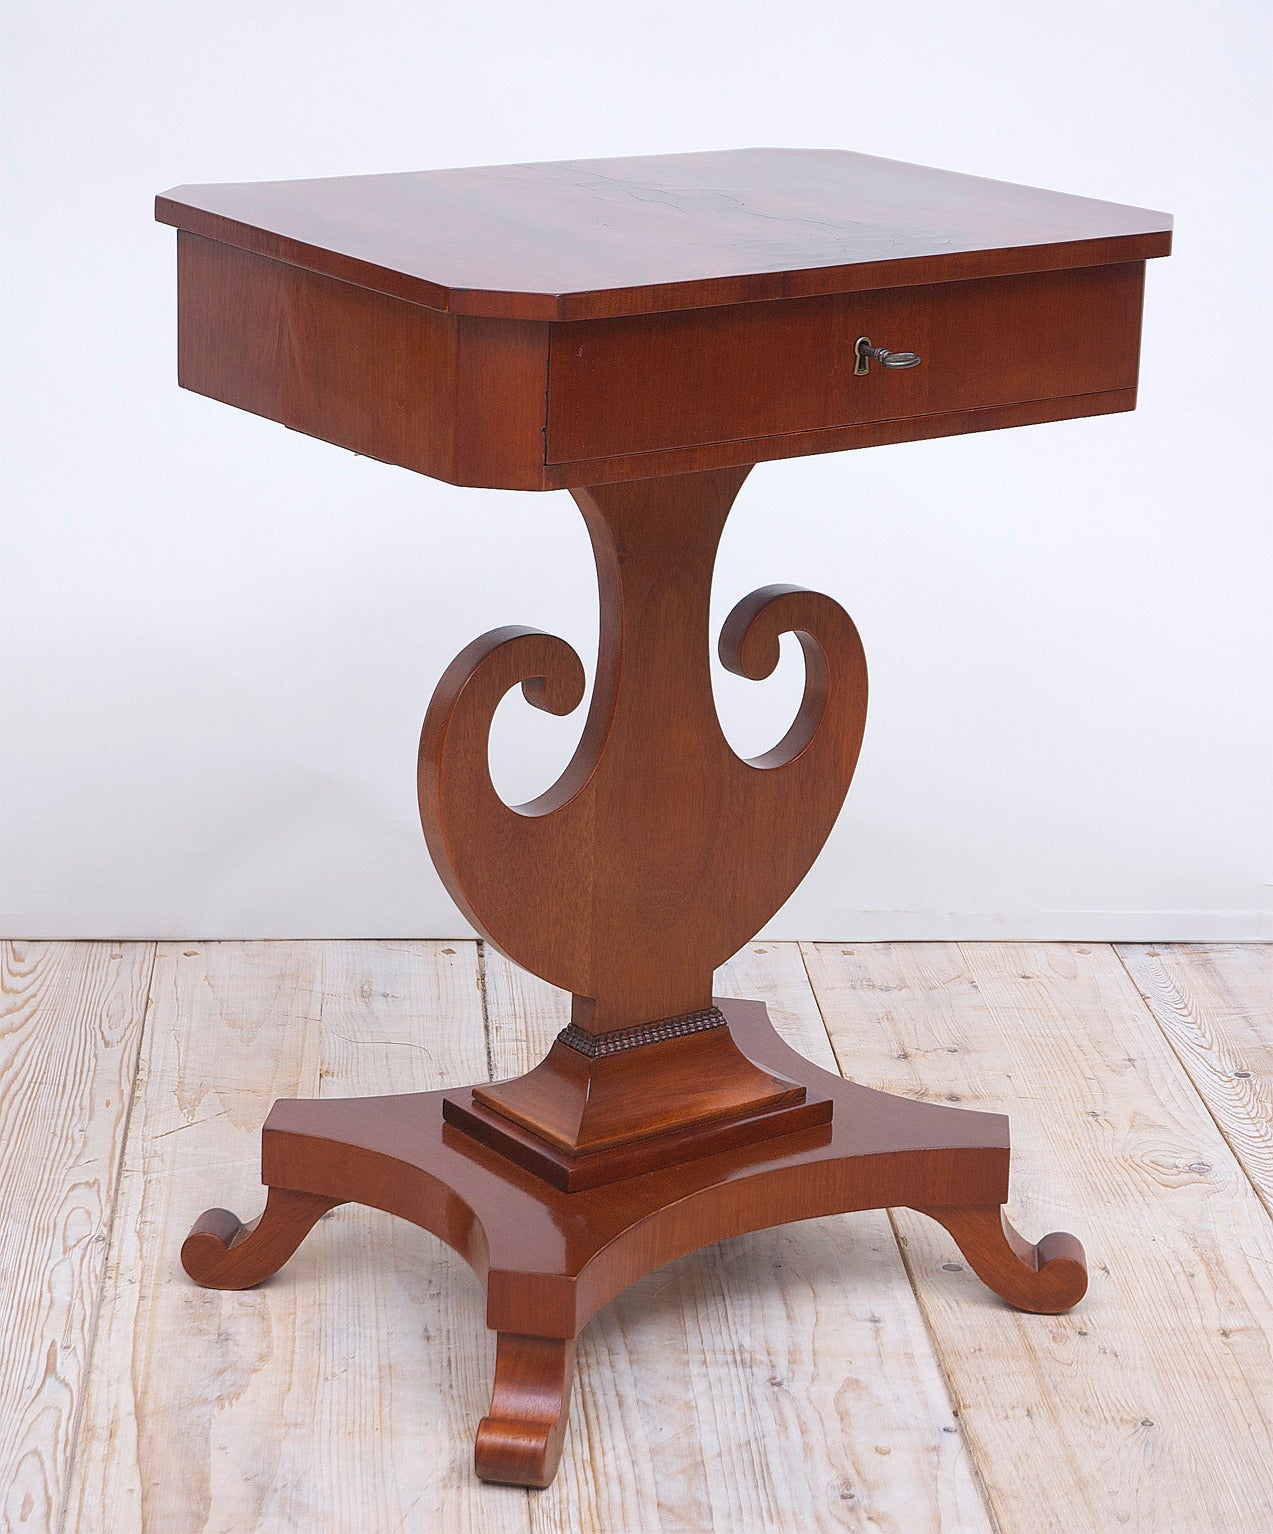 Antique Karl Johan Side Table with Lyre Base in Mahogany, Sweden, circa 1845 5